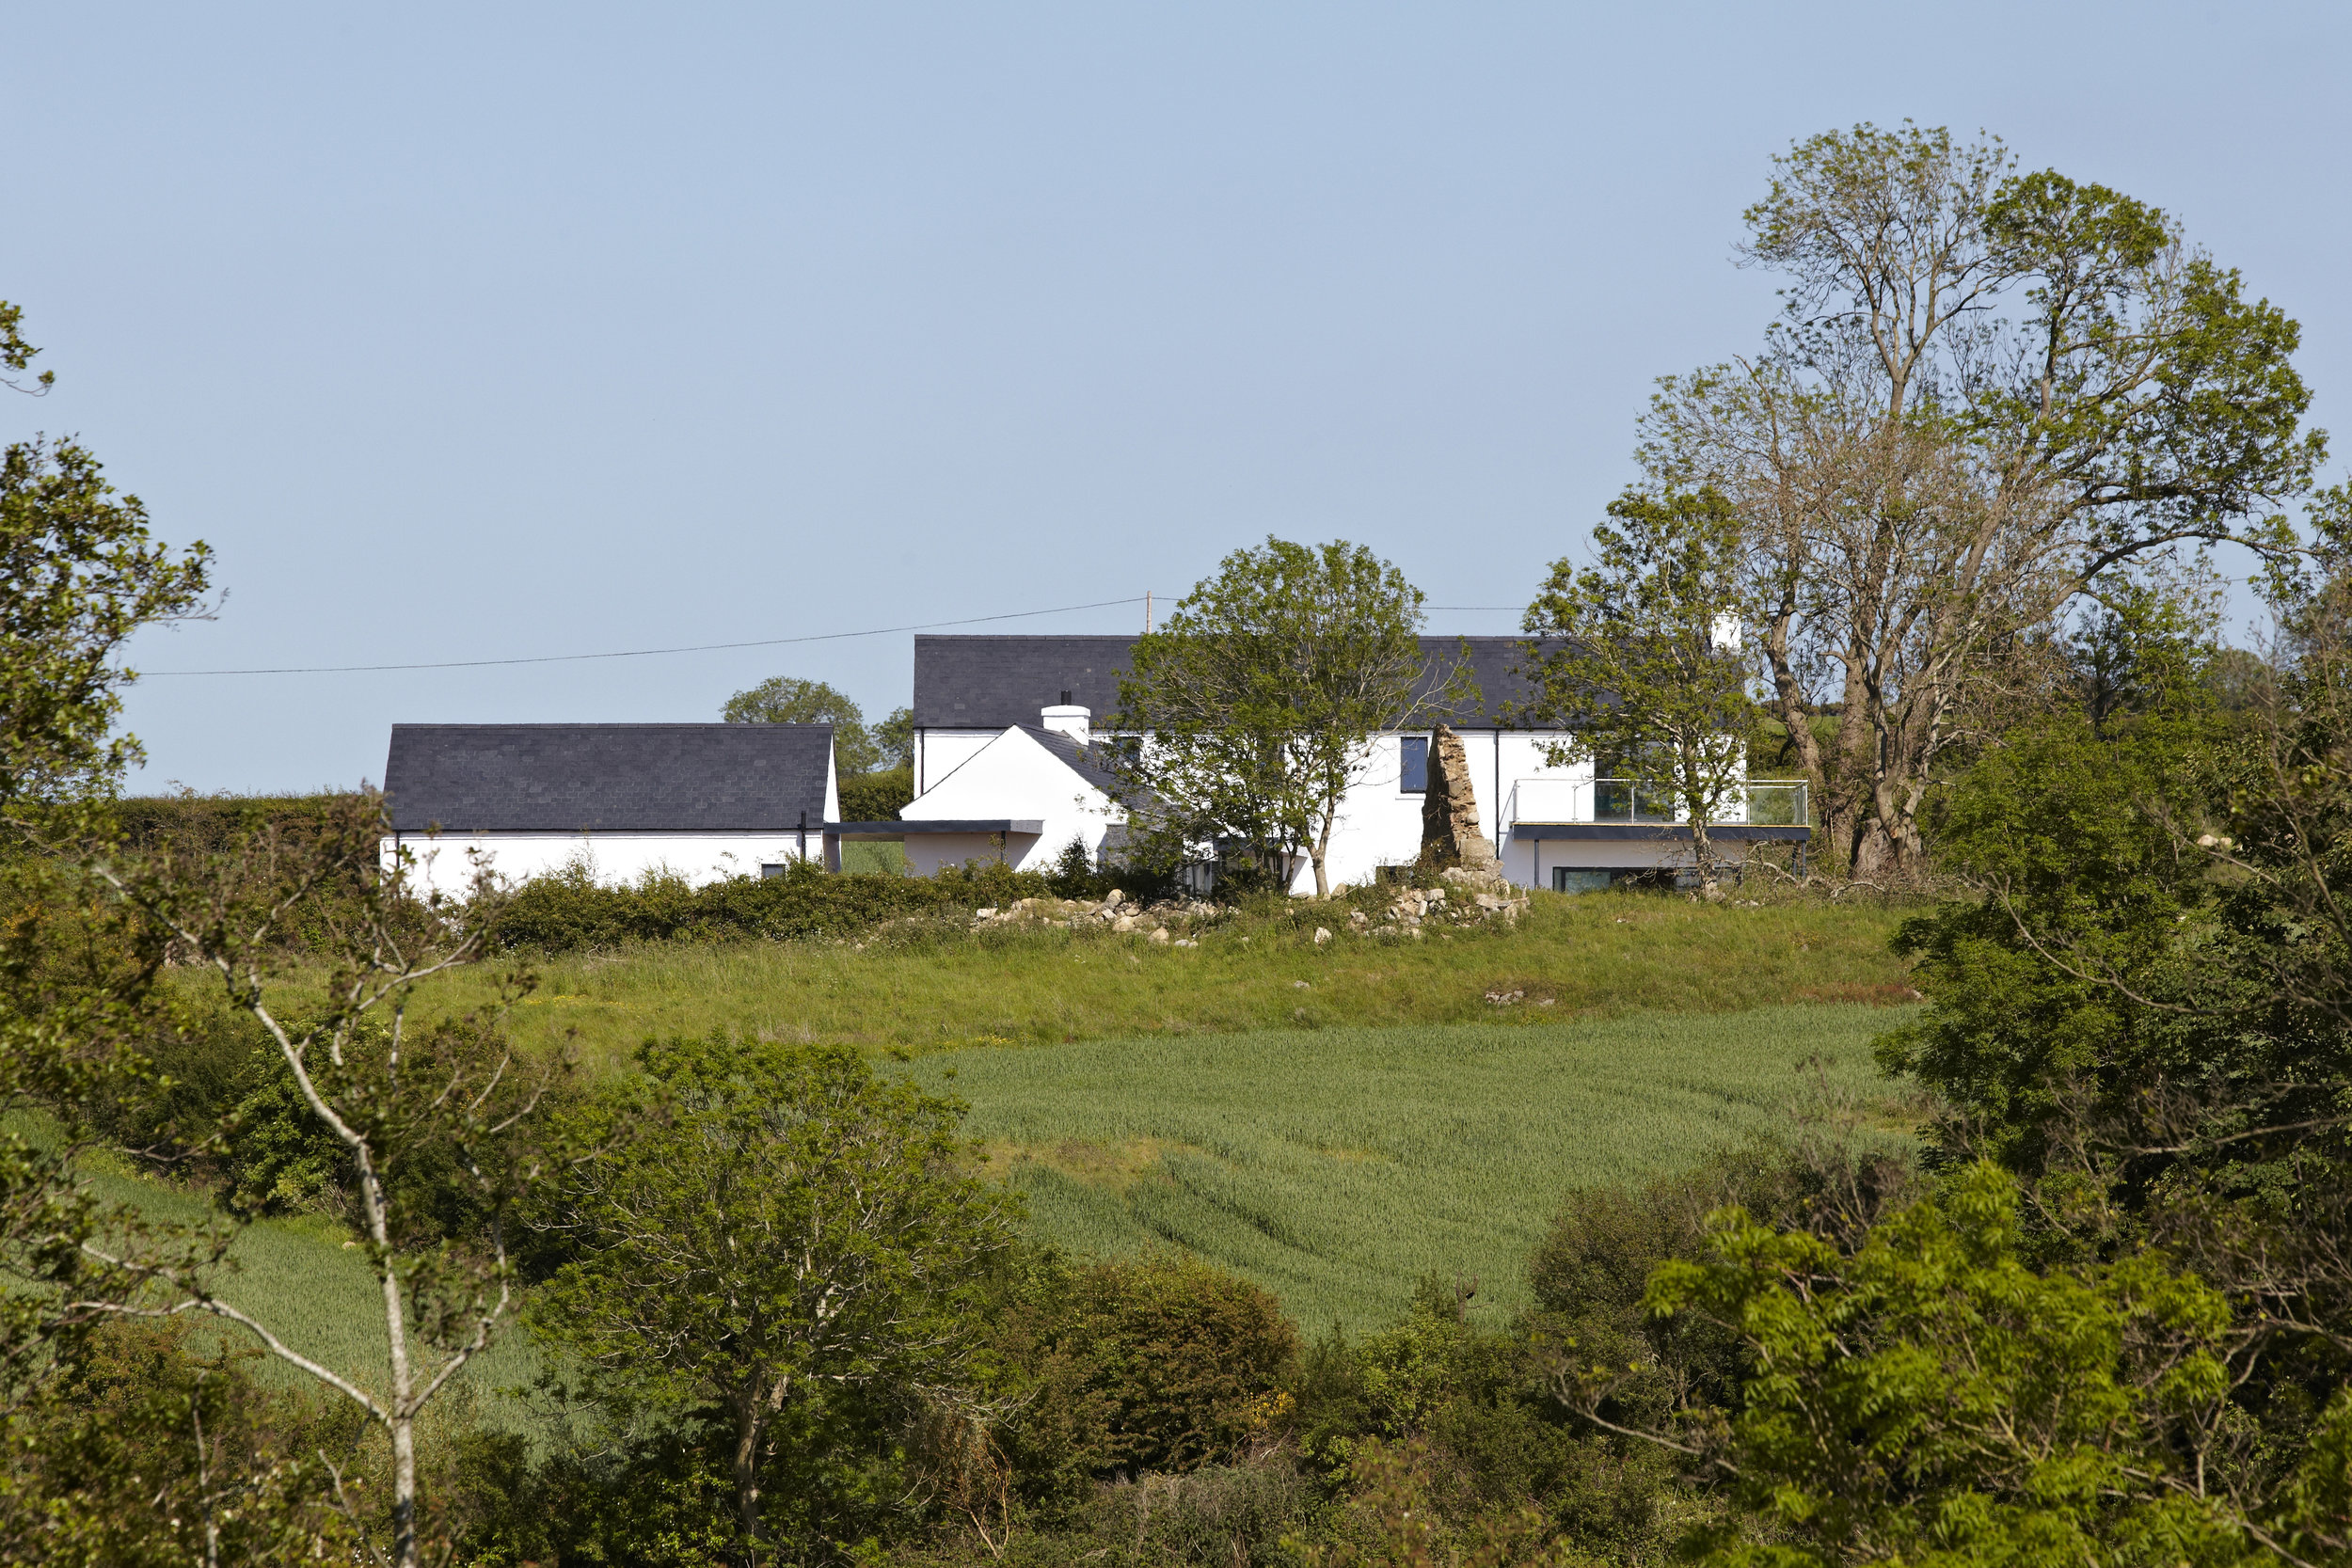 Paul_McAlister_Architects_Drumlins_Eco-House_view.jpg